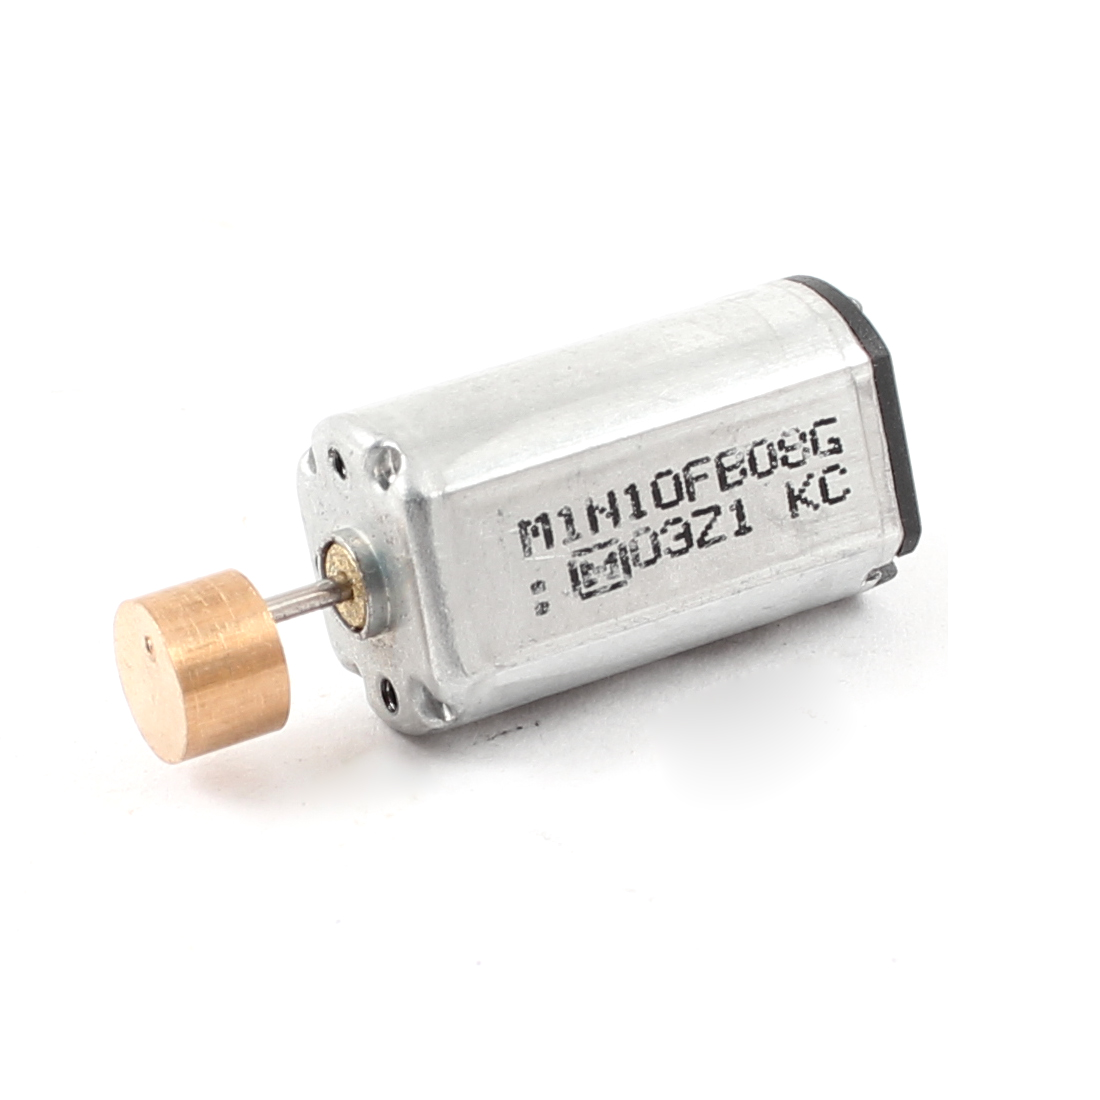 Replacement-6V-10000RPM-Output-Speed-0-04A-DC-Micro-Vibration-Motor